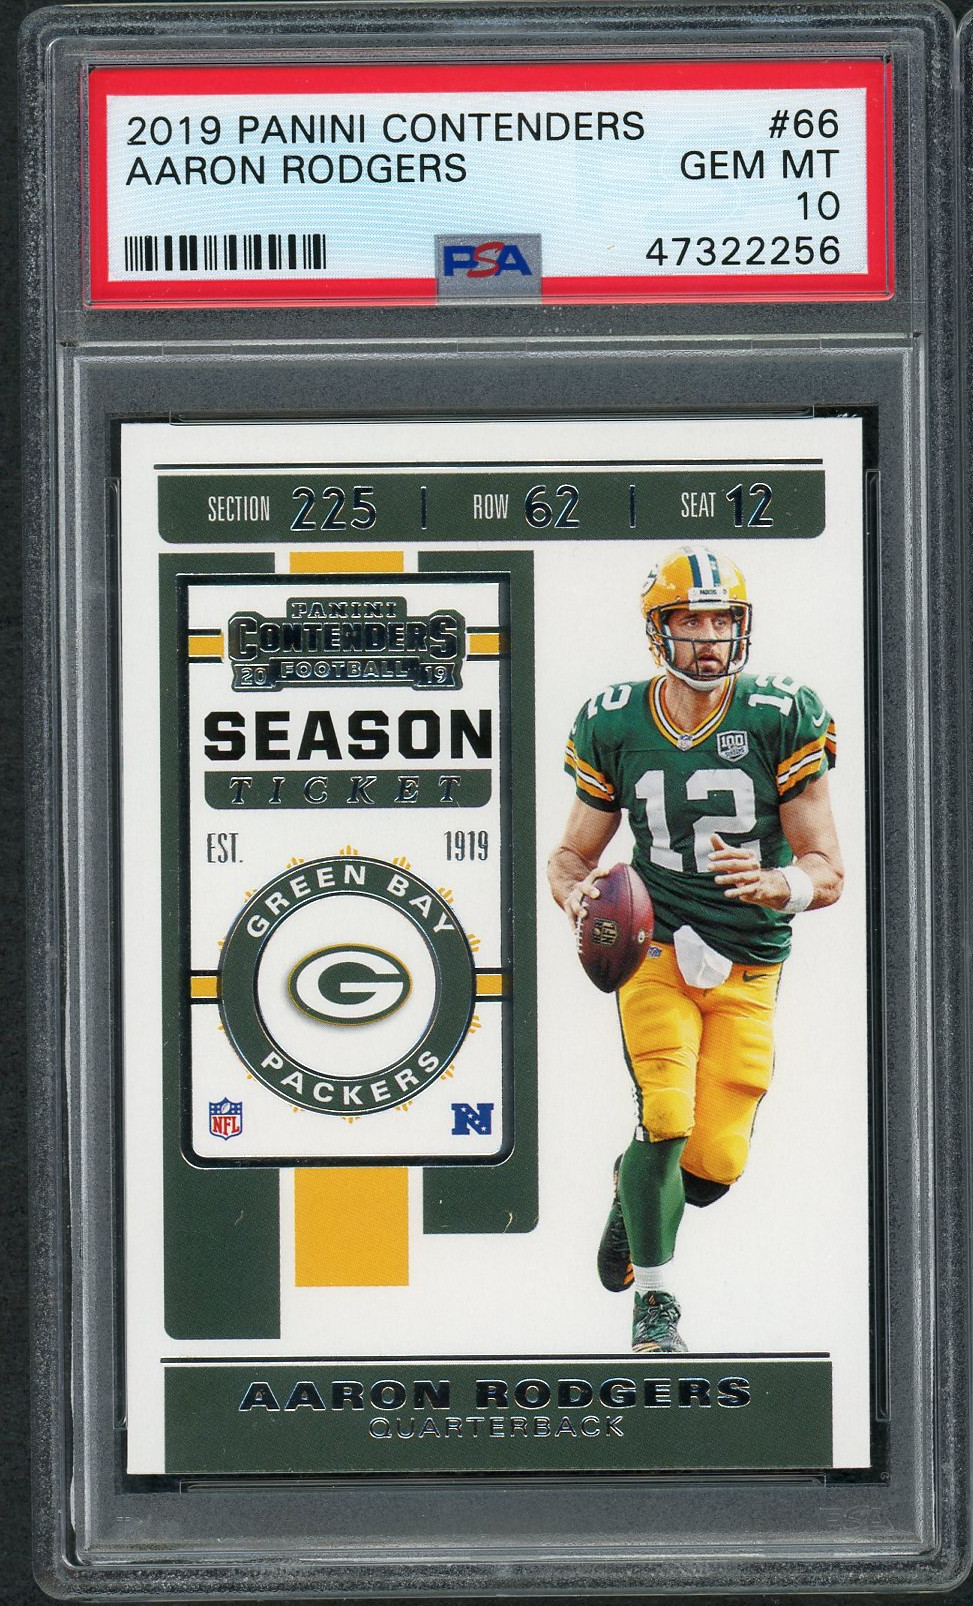 Aaron Rodgers Green Bay Packers 2019 Panini Contenders Football Card #66 Graded PSA 10 GEM MINT Aaron Rodgers Green Bay Packers 2019 Panini Contenders Football Card #66 Graded PSA 10 GEM MINT